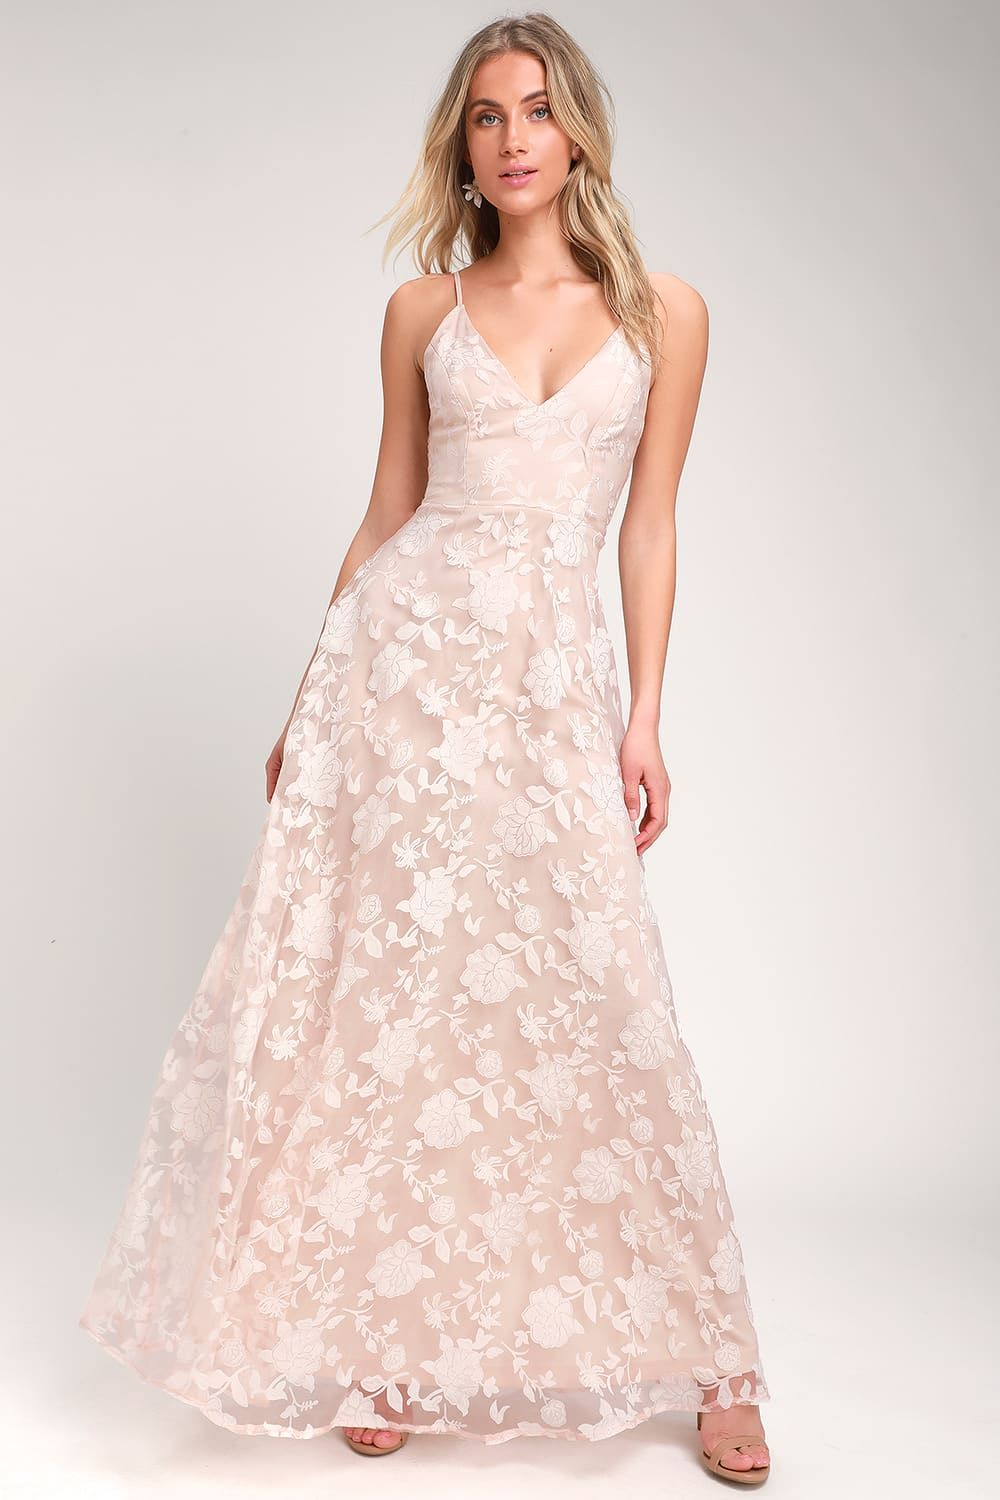 644dc14a42df Everlasting Romance Blush Floral Maxi Dress in 2019 ...